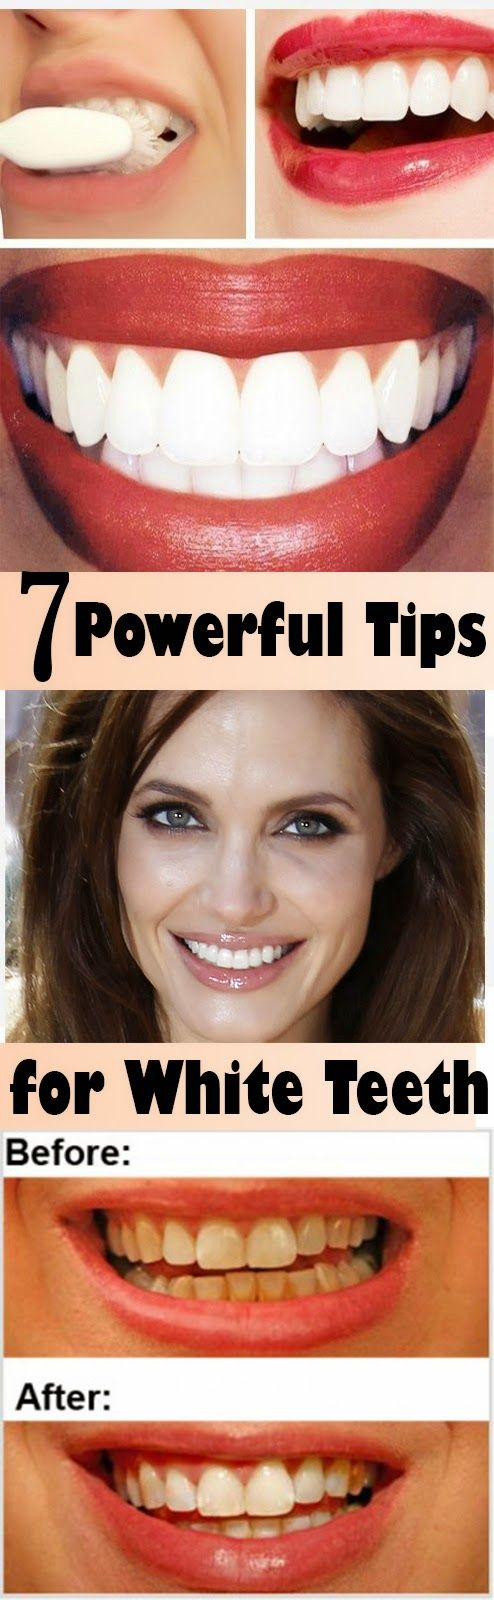 7 Powerful Tips For White Teeth